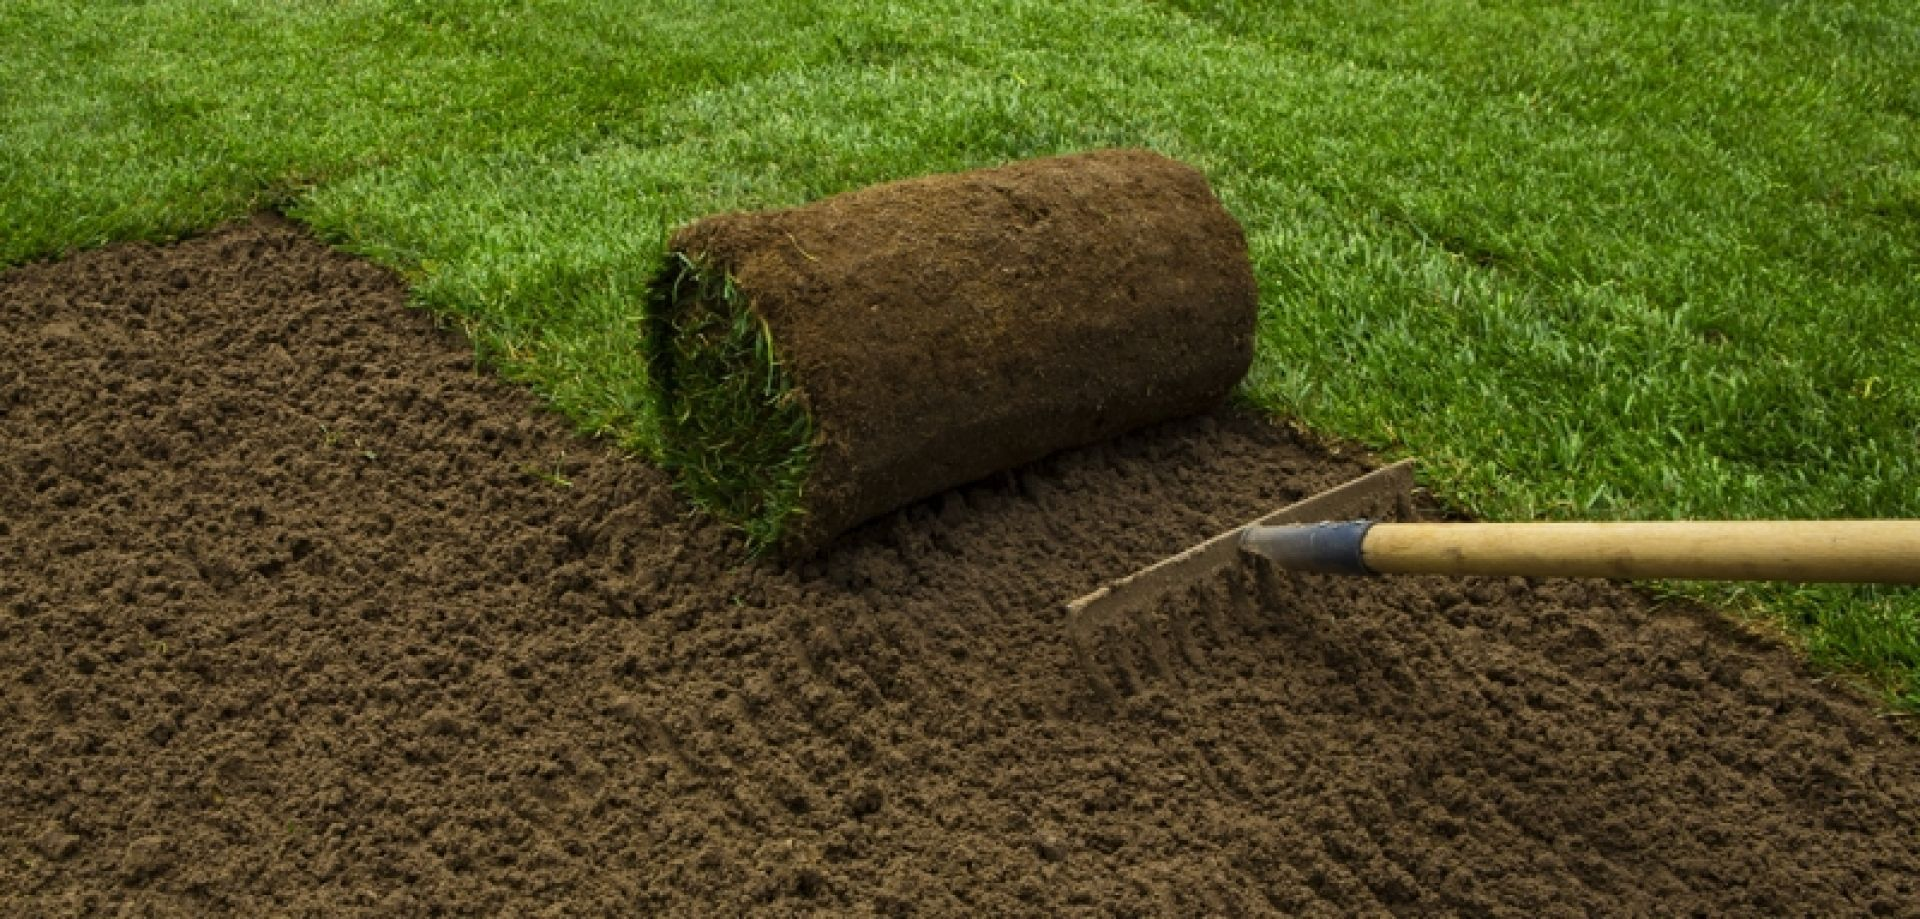 How to prepare ground and turf a lawn a step by step beginners guide